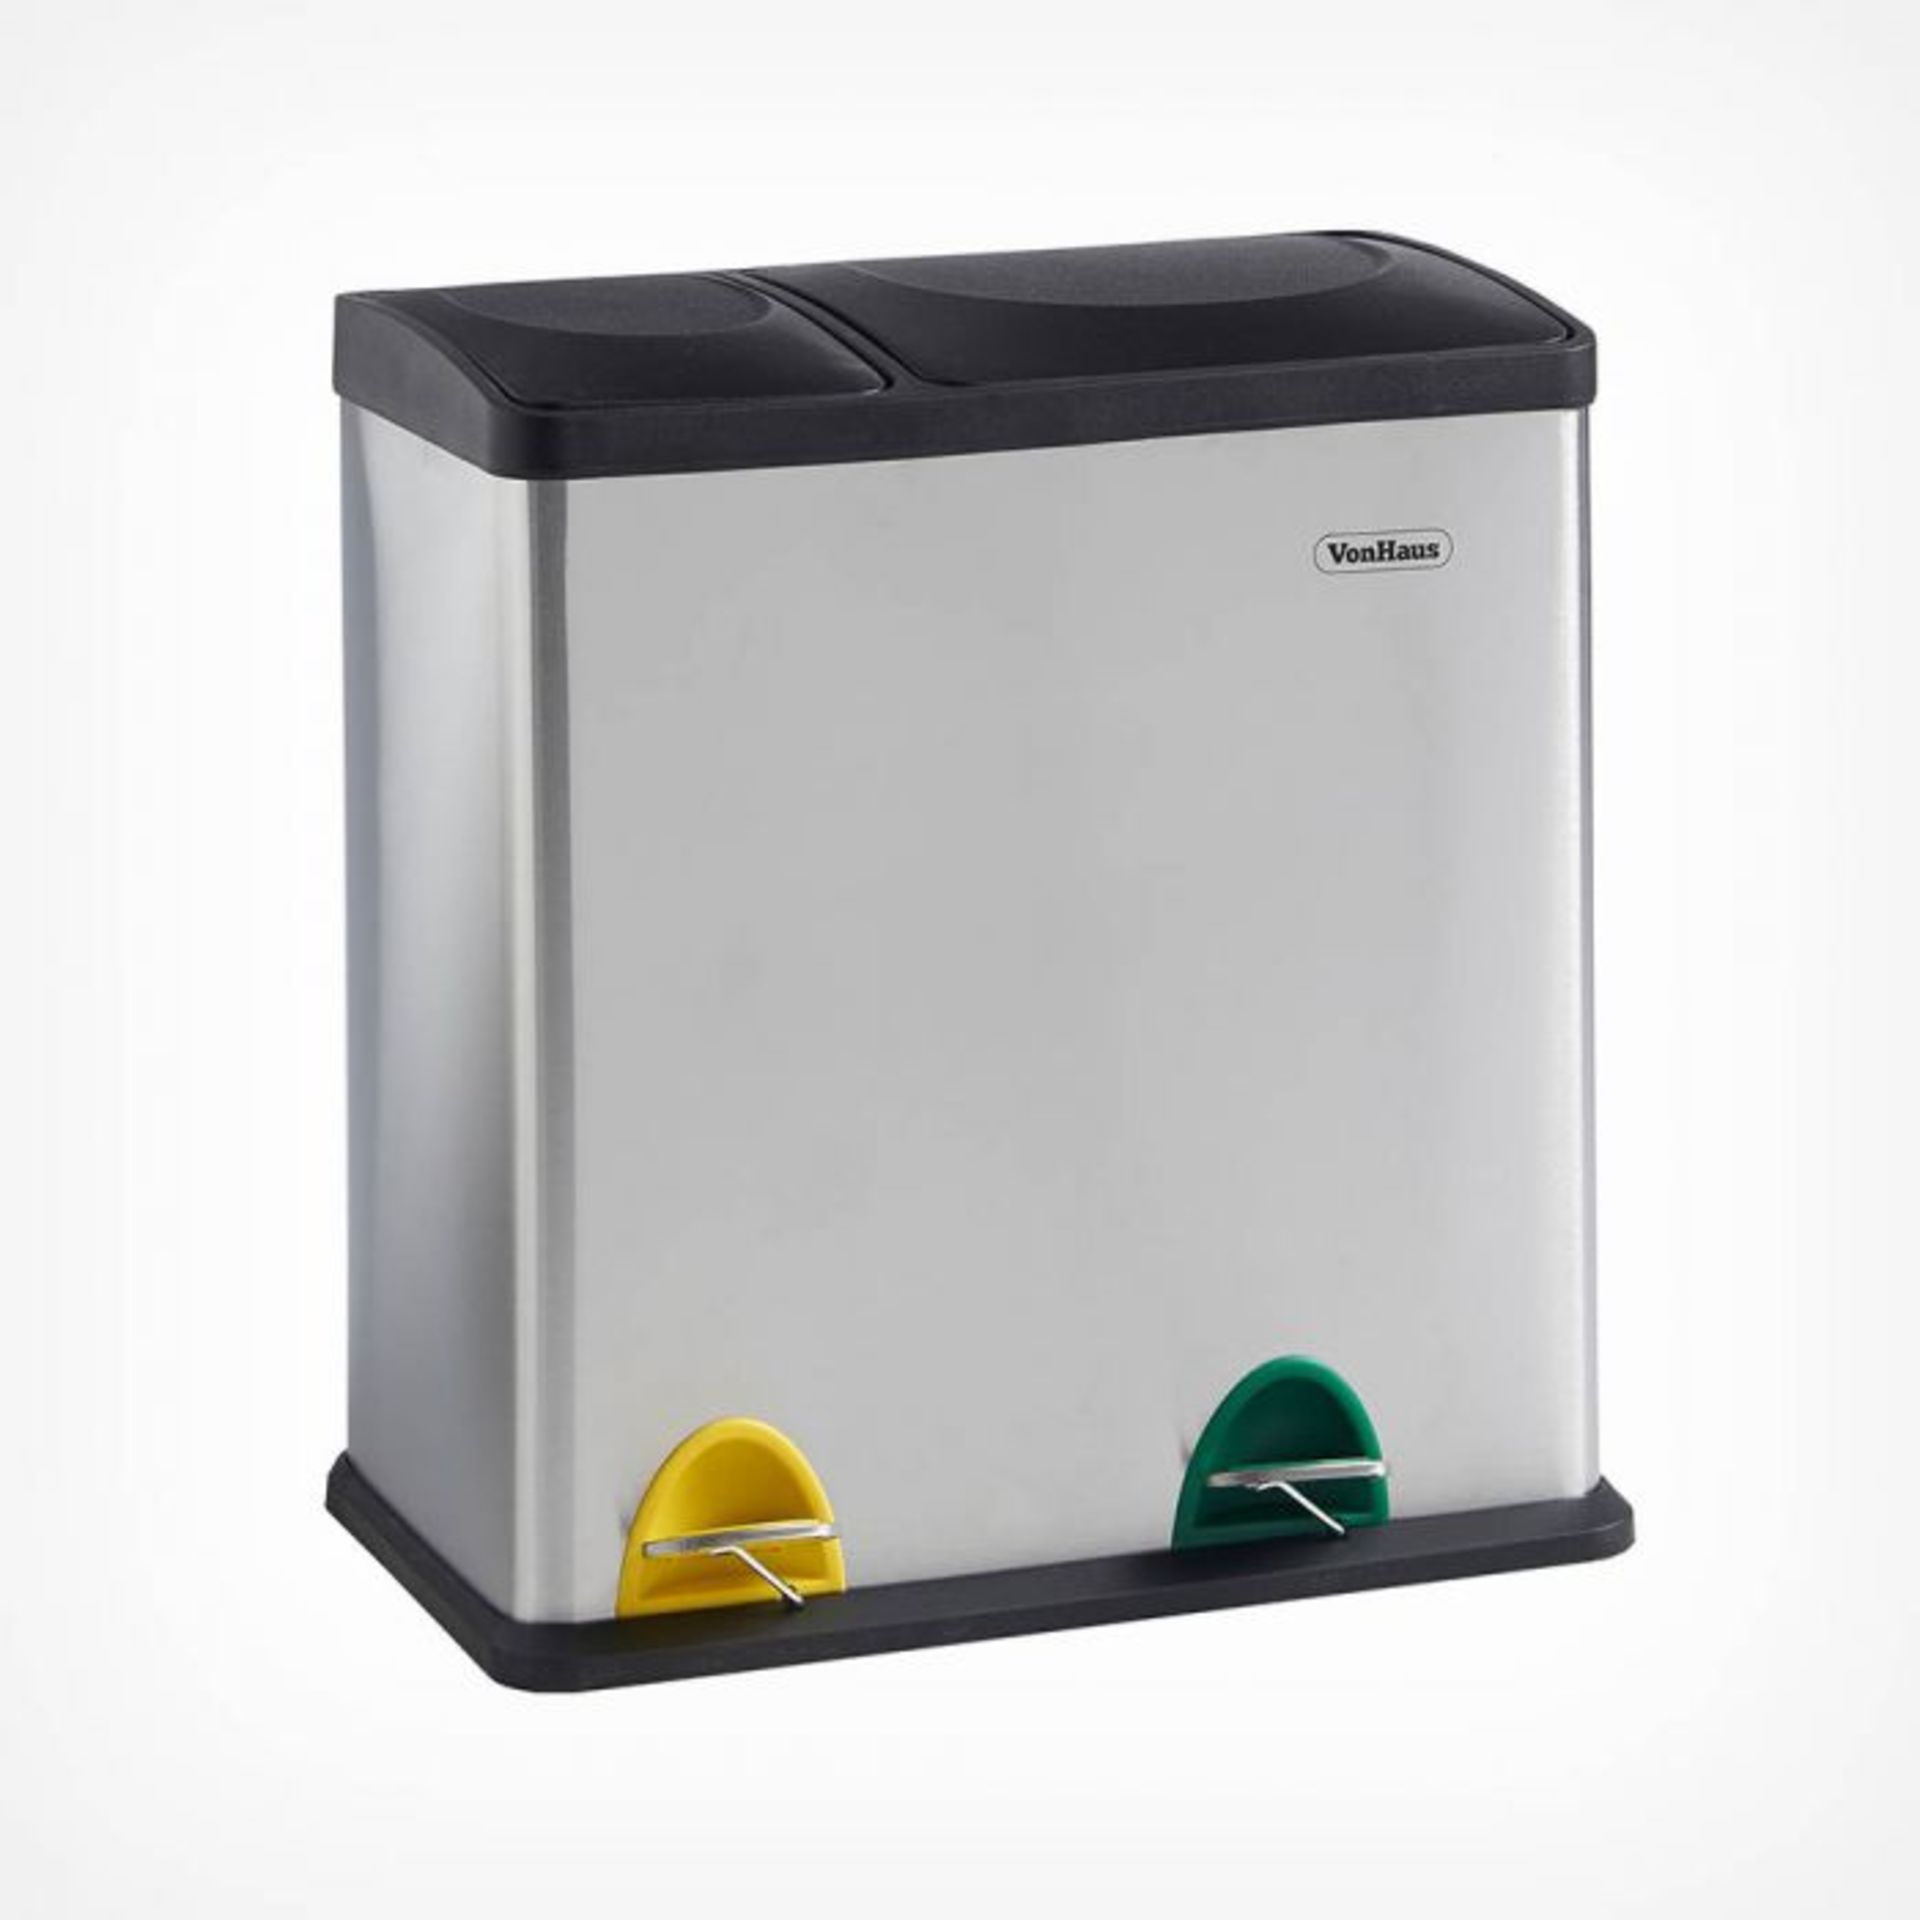 Lot 332 - (V101) 6L 2 in 1 Recycling Bin Streamline your recycling routine! Suitable for general househo...